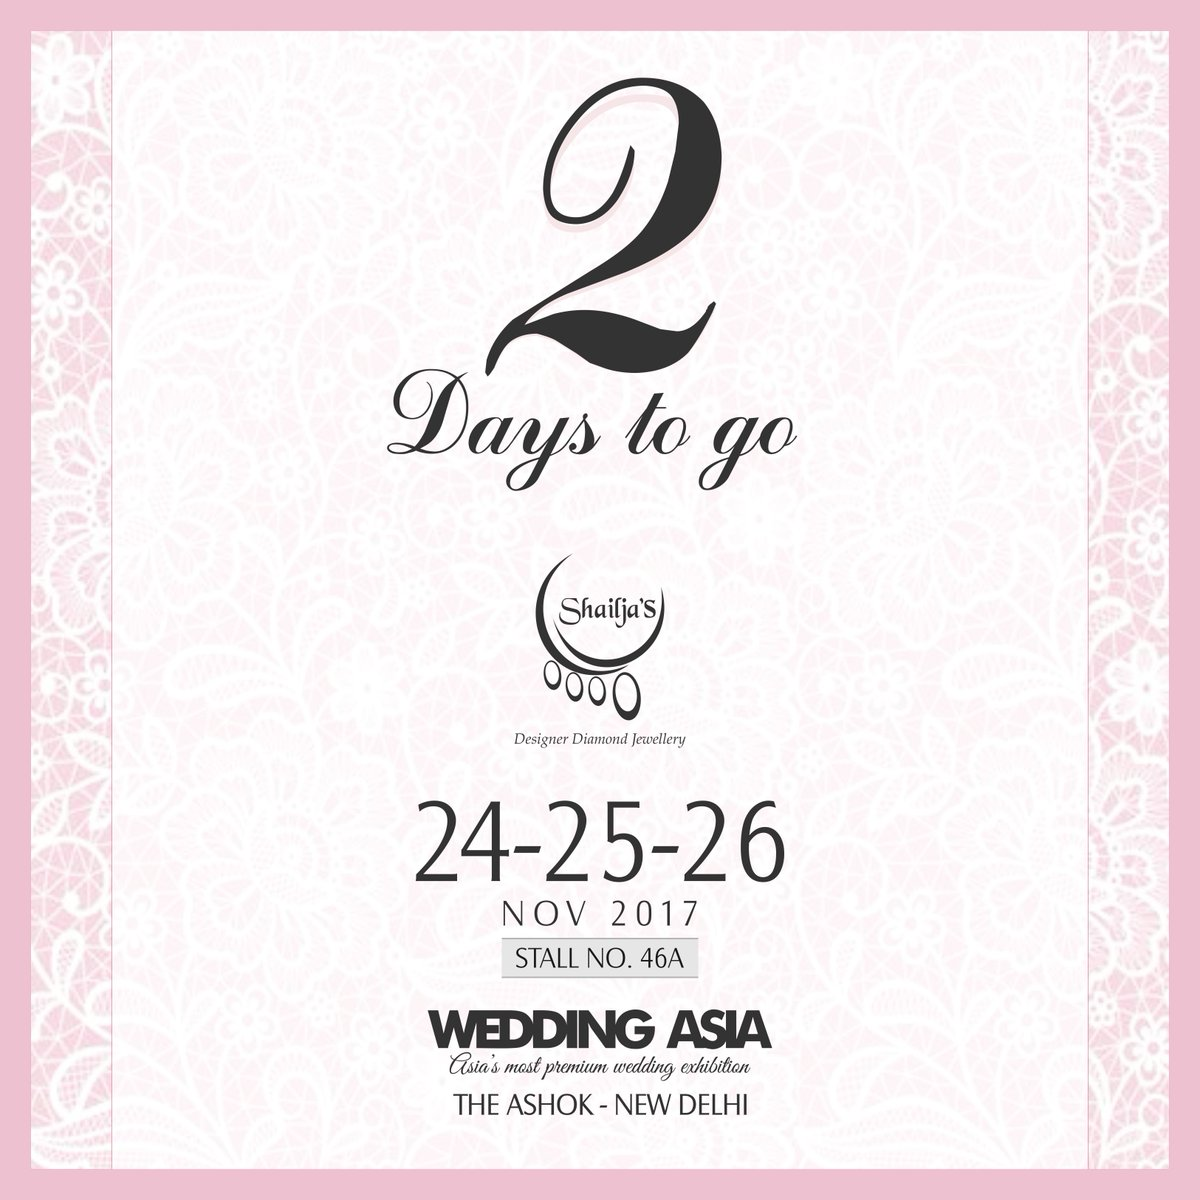 Think, you Asian grandeur wedding invites the expert